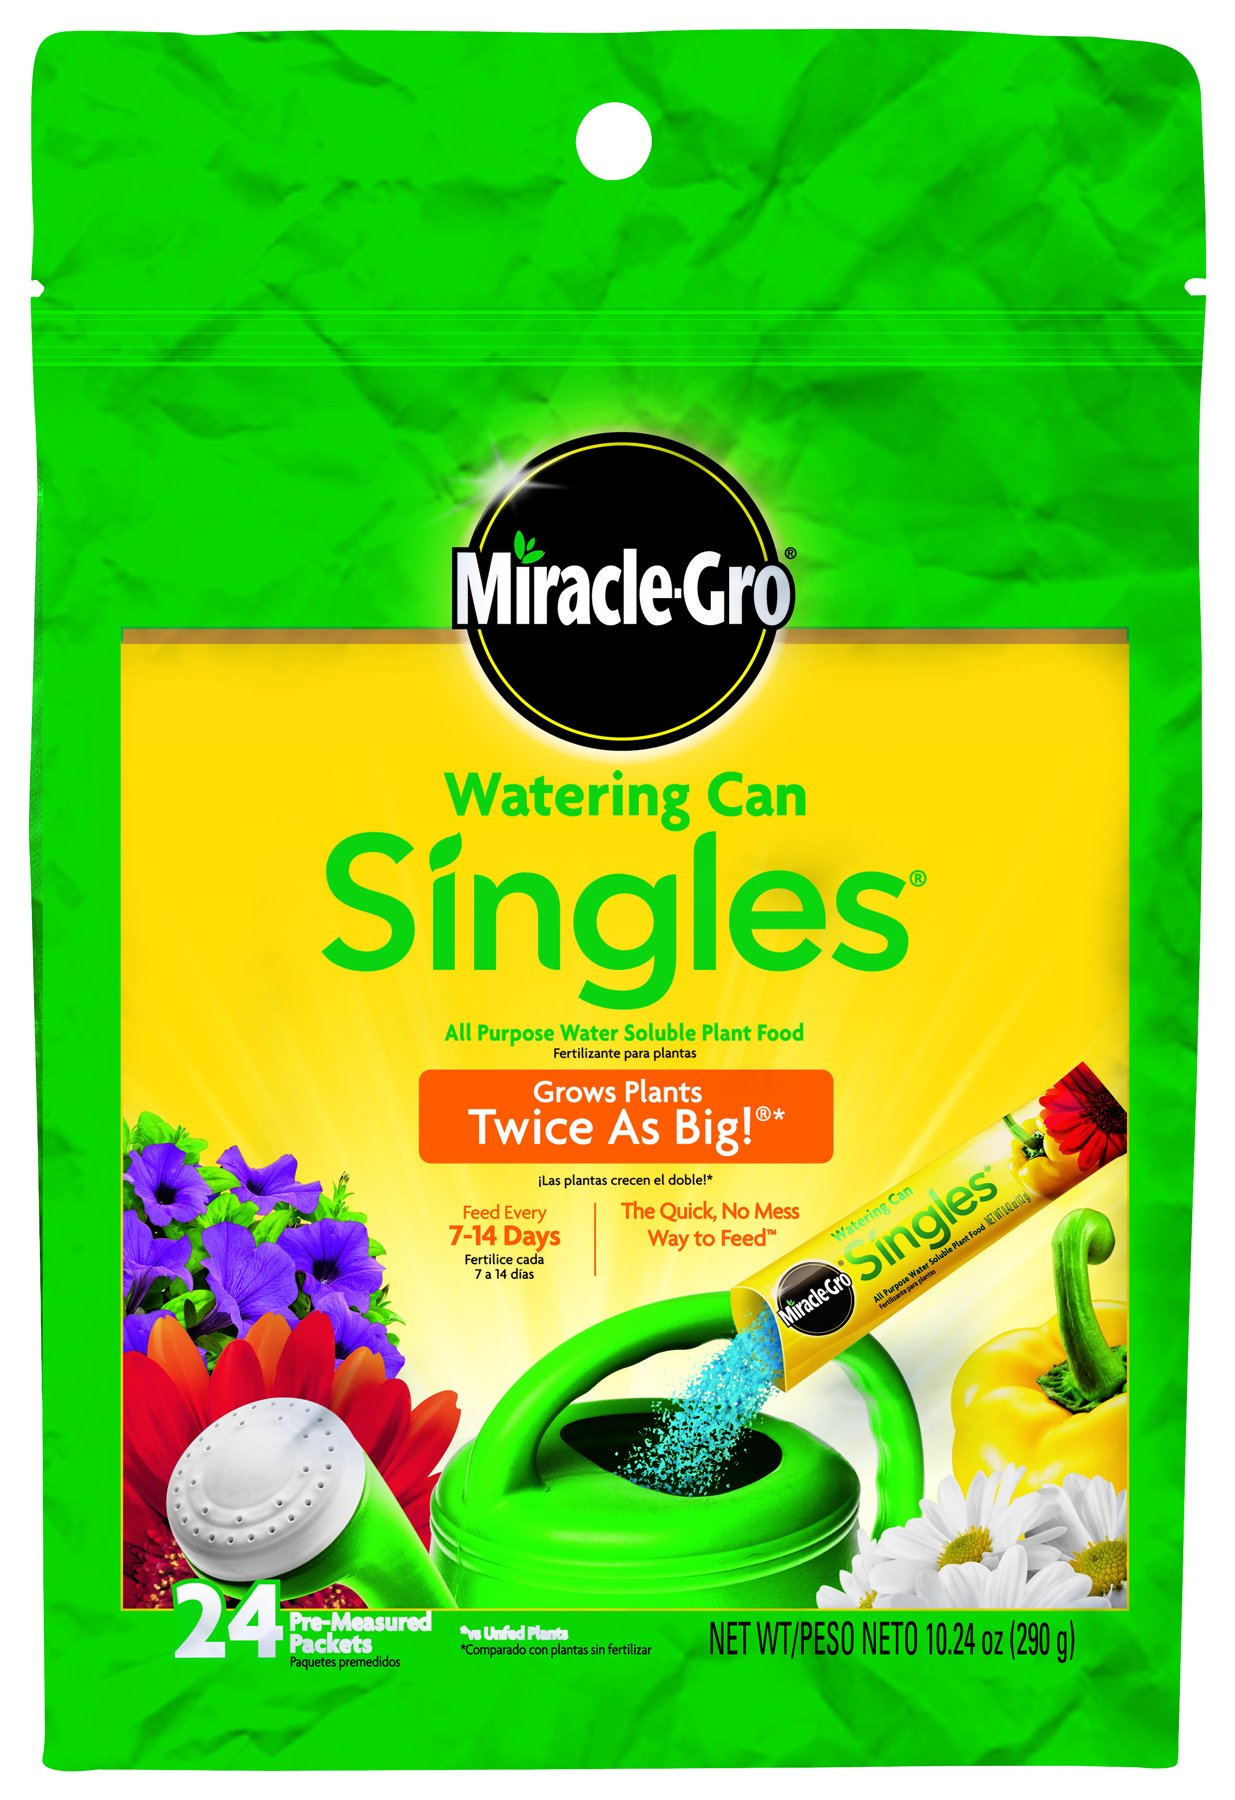 Miracle-Gro 1013203 Watering Can Singles All Purpose Water Soluble Plant Food, 24-8-16, 24-Pack by Miracle-Gro (Image #1)